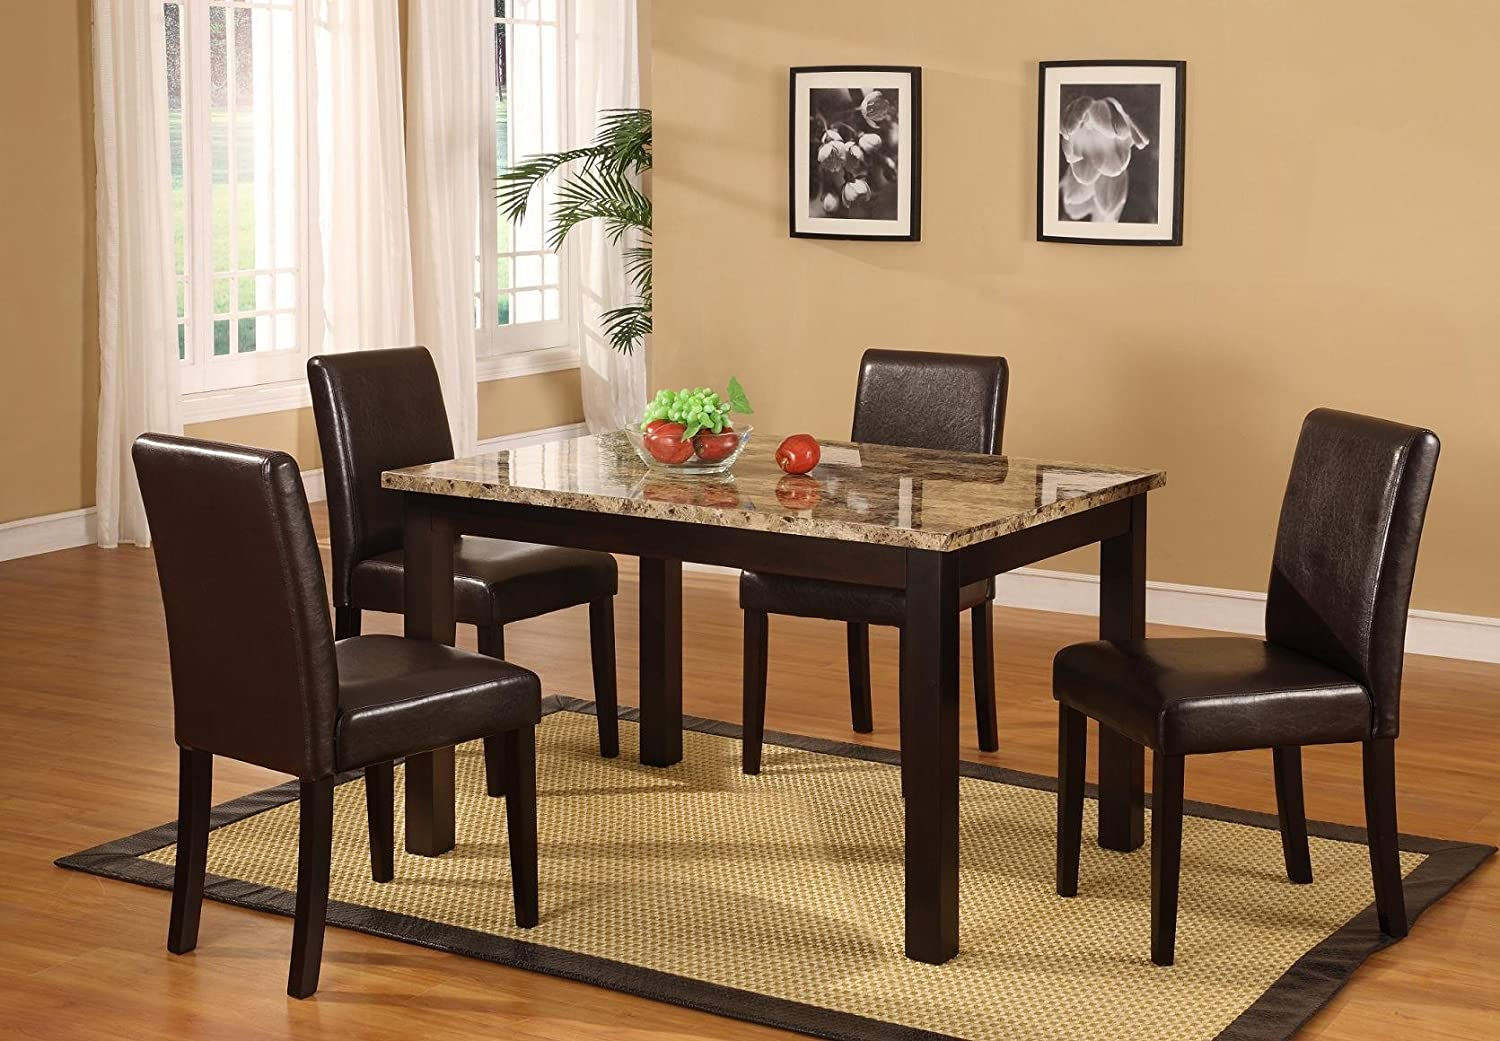 marble dining room furniture. Amazon.com - Roundhill Furniture Briden Dark Artificial Marble Top Dinette Dining Set Table \u0026 Chair Sets Room L